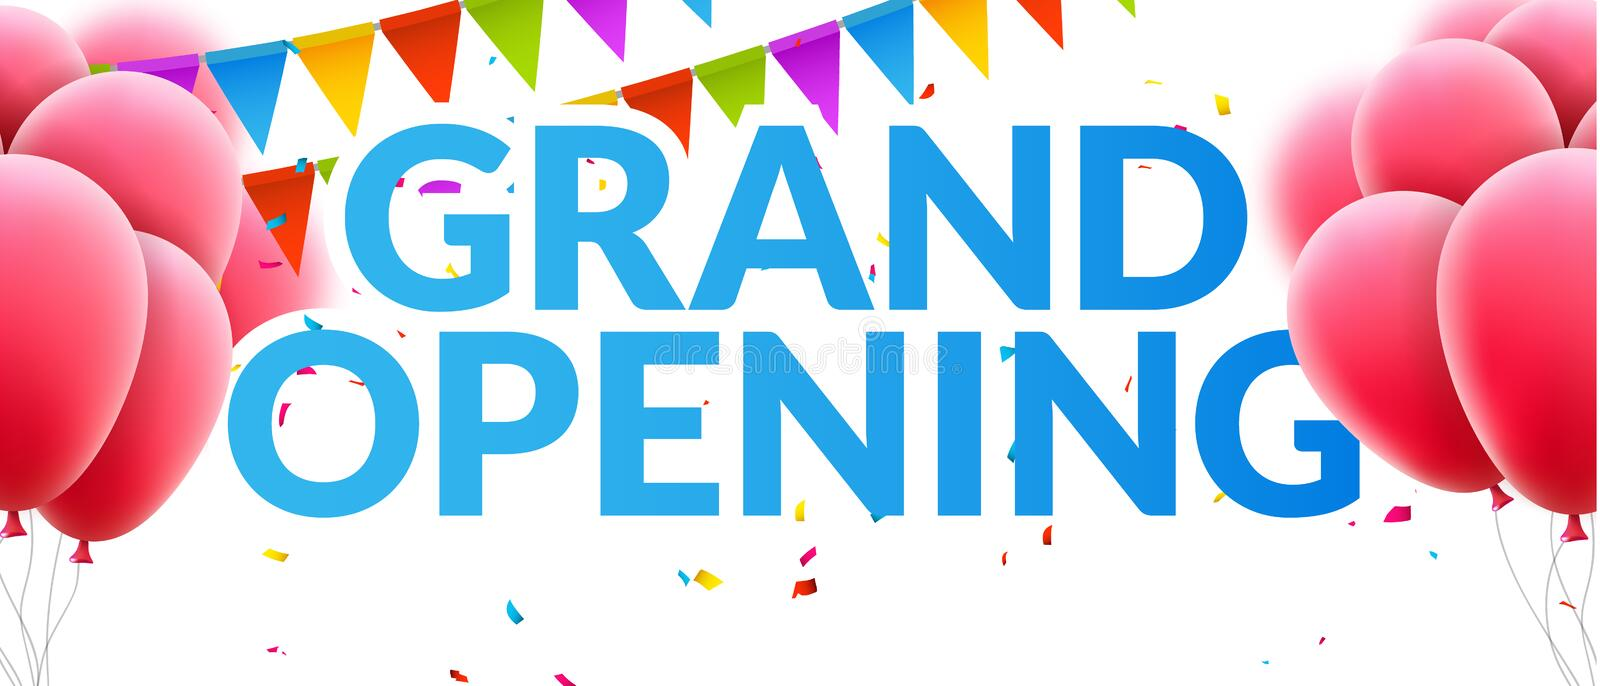 Grand Opening event invitation banner with balloons and confetti. Grand Opening poster template design stock illustration